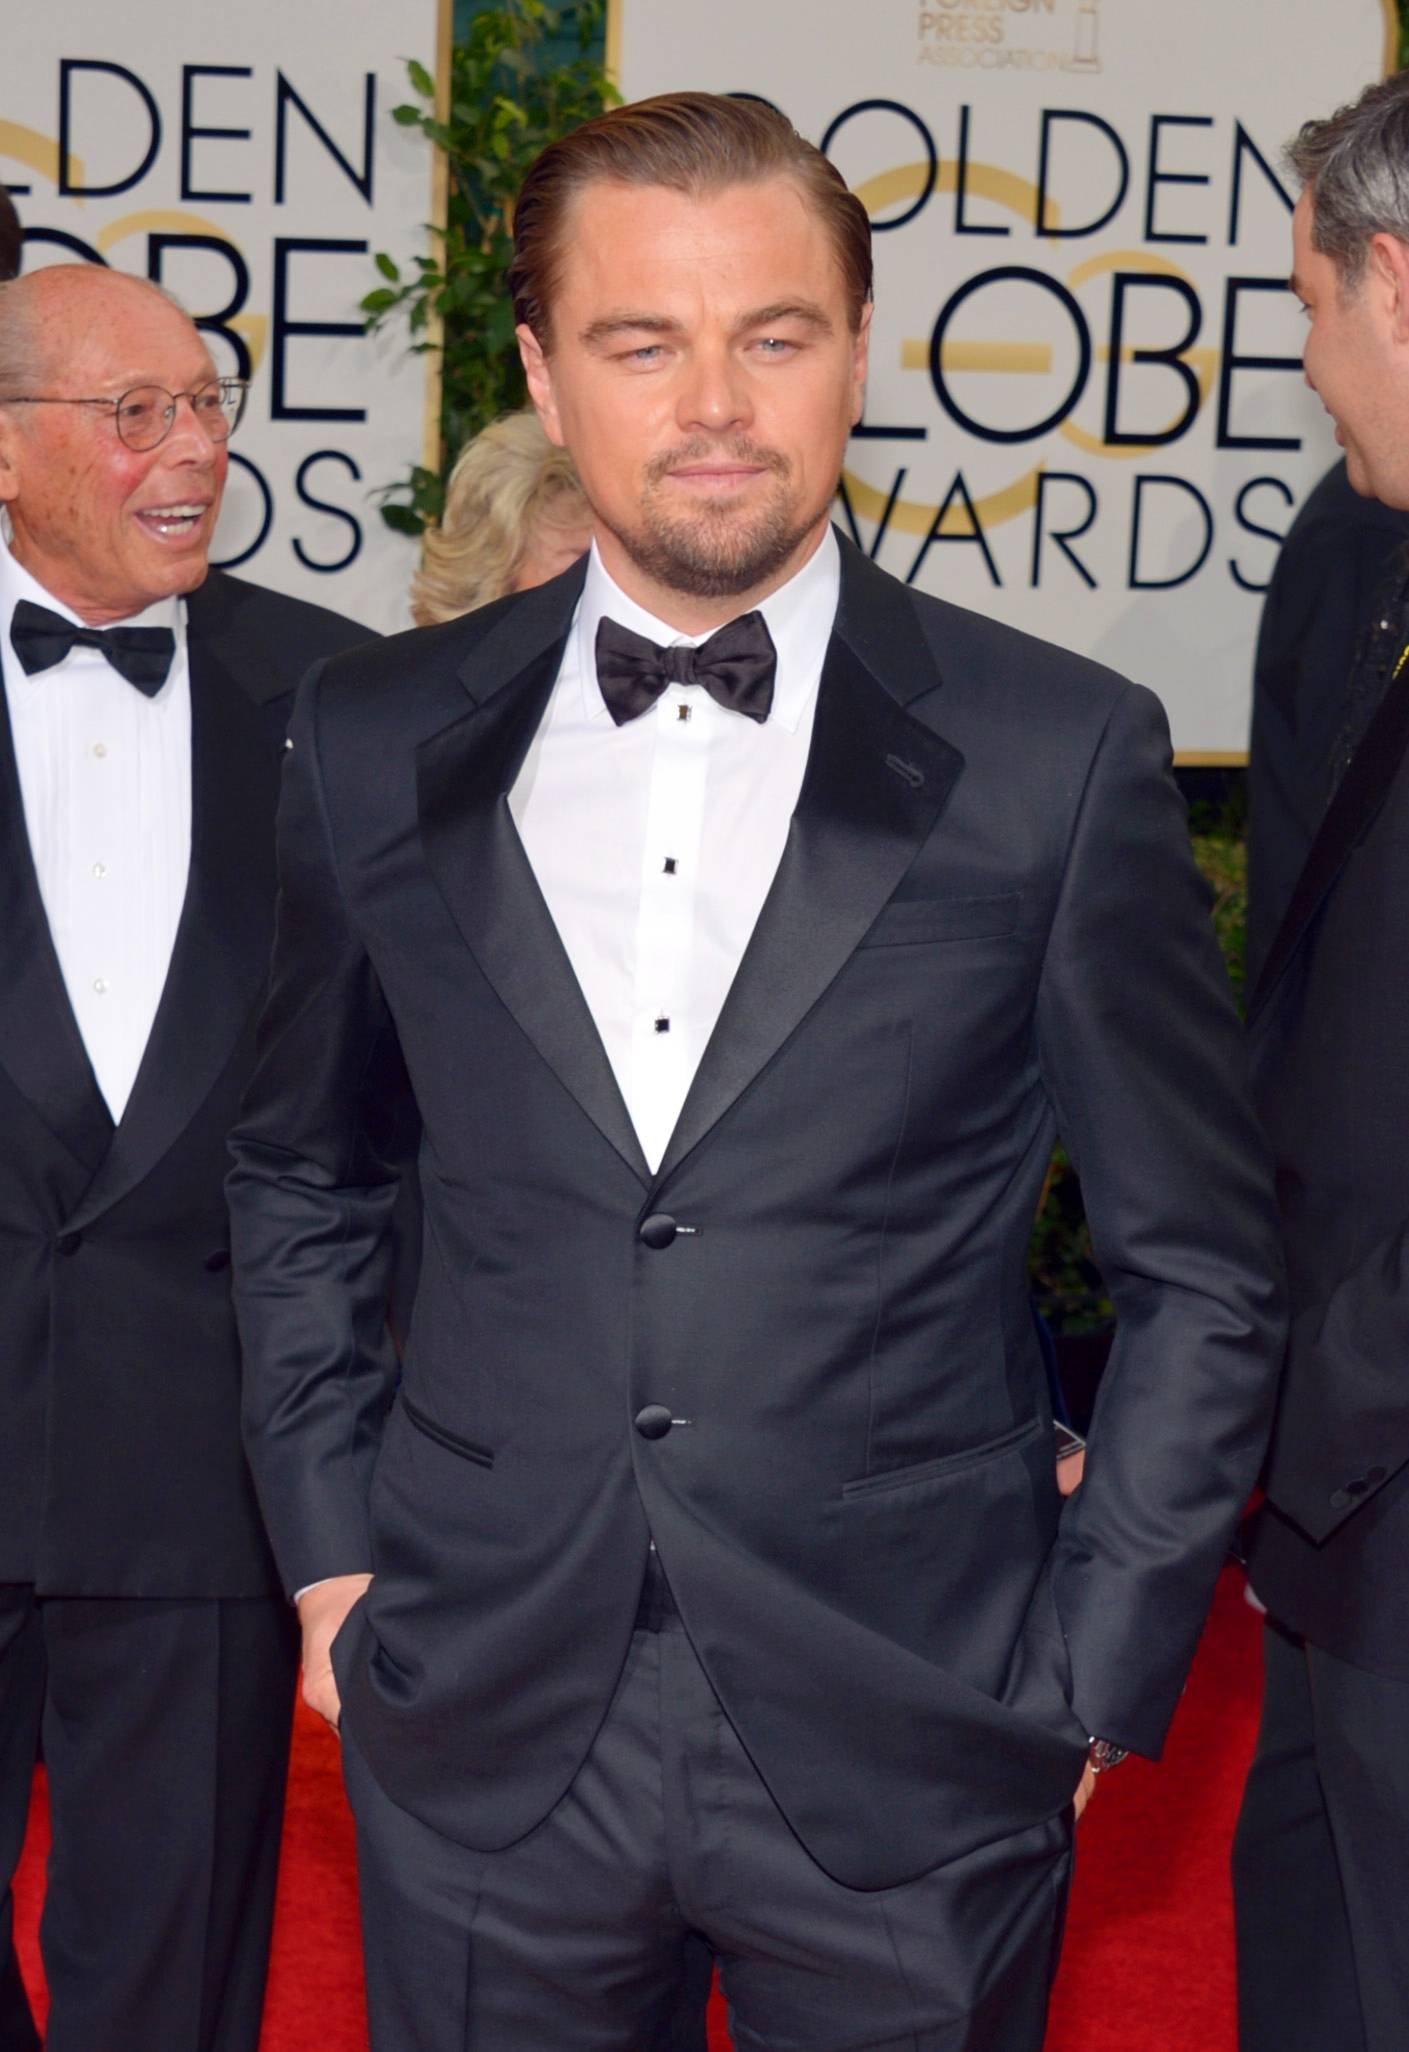 """The Wolf of Wall Street"" star looks relaxed and dapper on the red carpet."